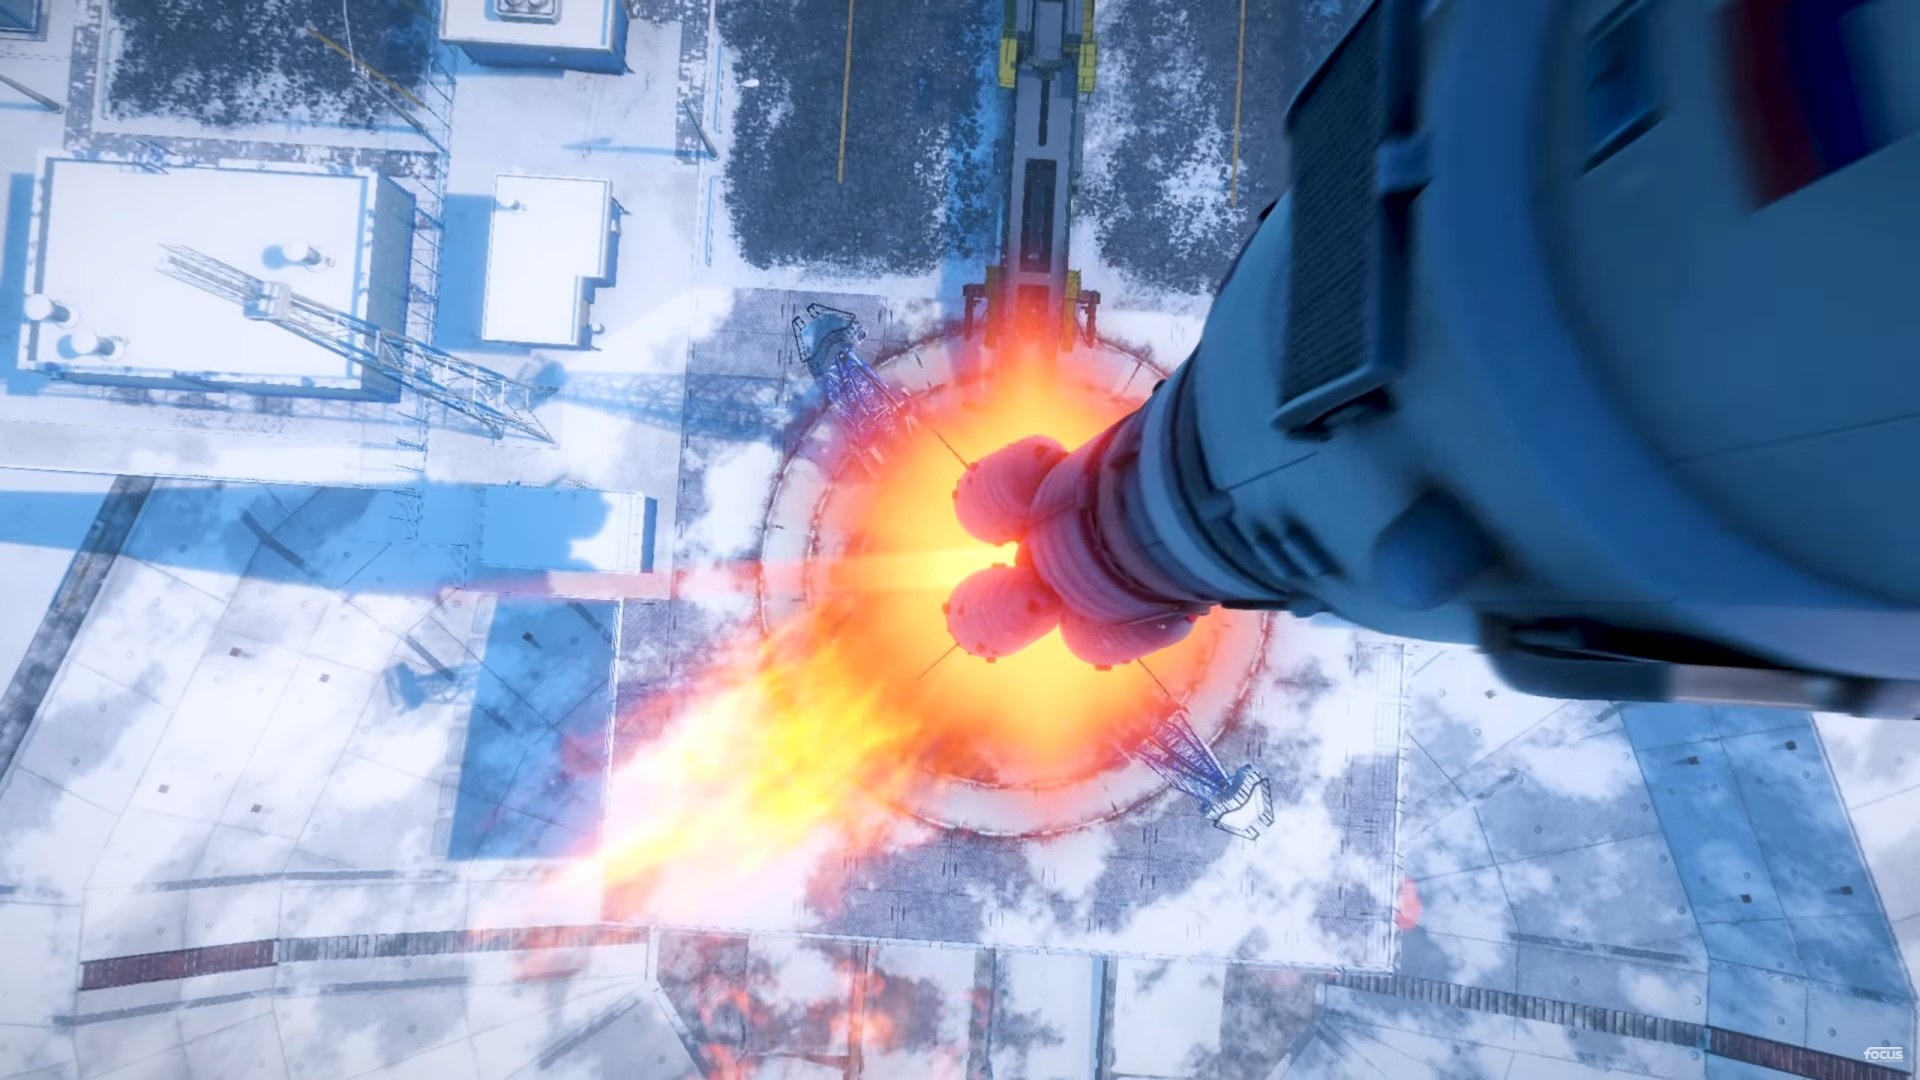 SnowRunner Season 4 will have you building a giant rocket in Russia